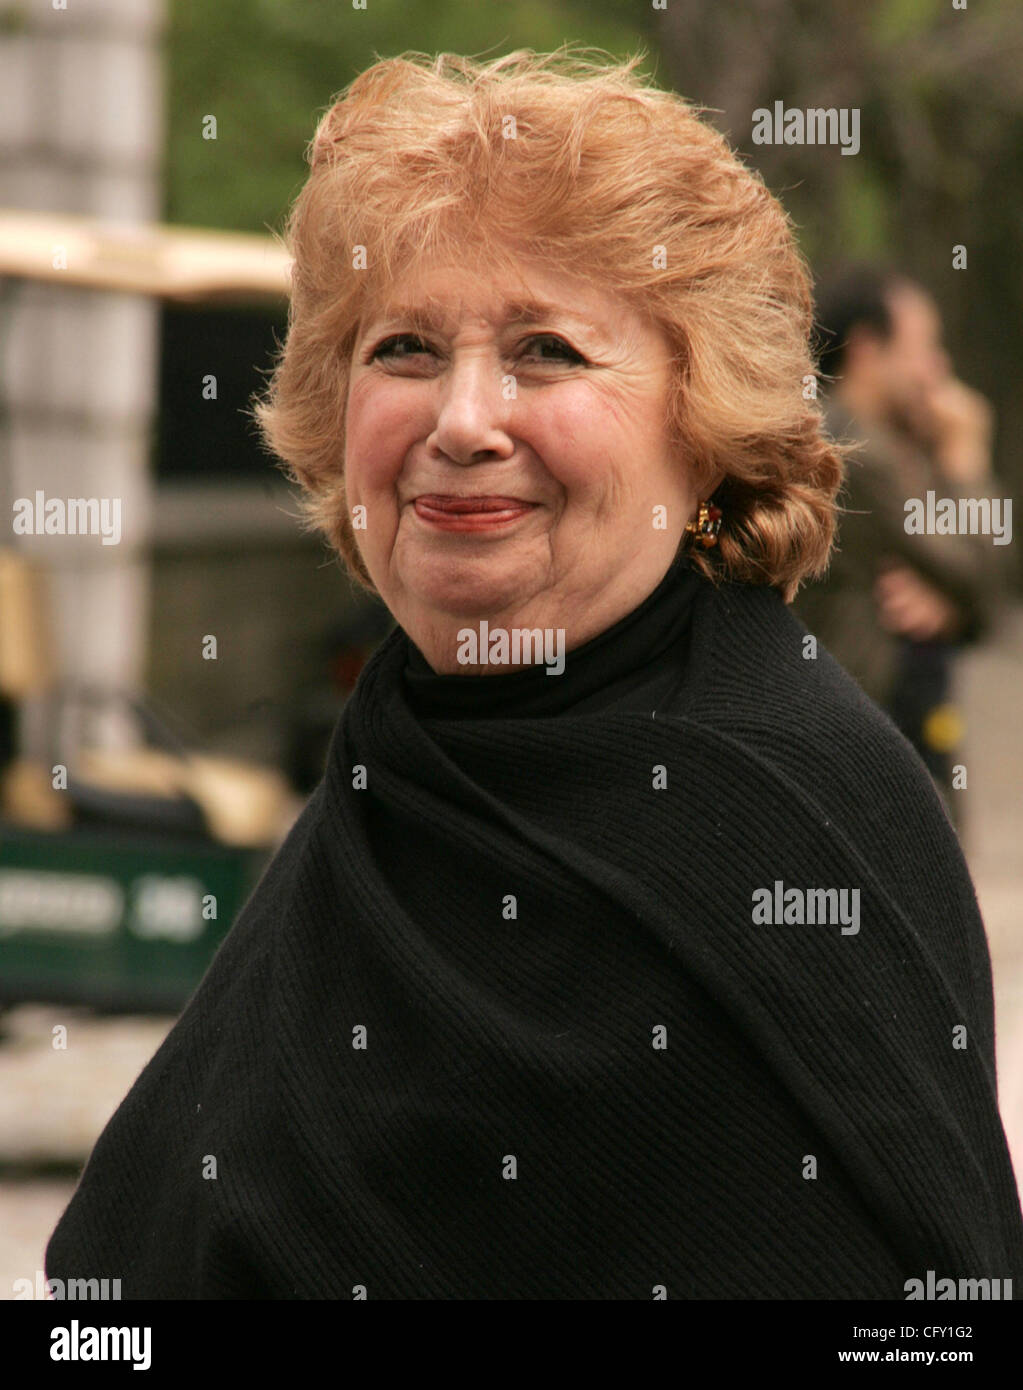 May 02, 2007 - New York, NY, USA - Opera singer BEVERLY SILLS at the arrivals for the 25th Annual Frederick Law - Stock Image